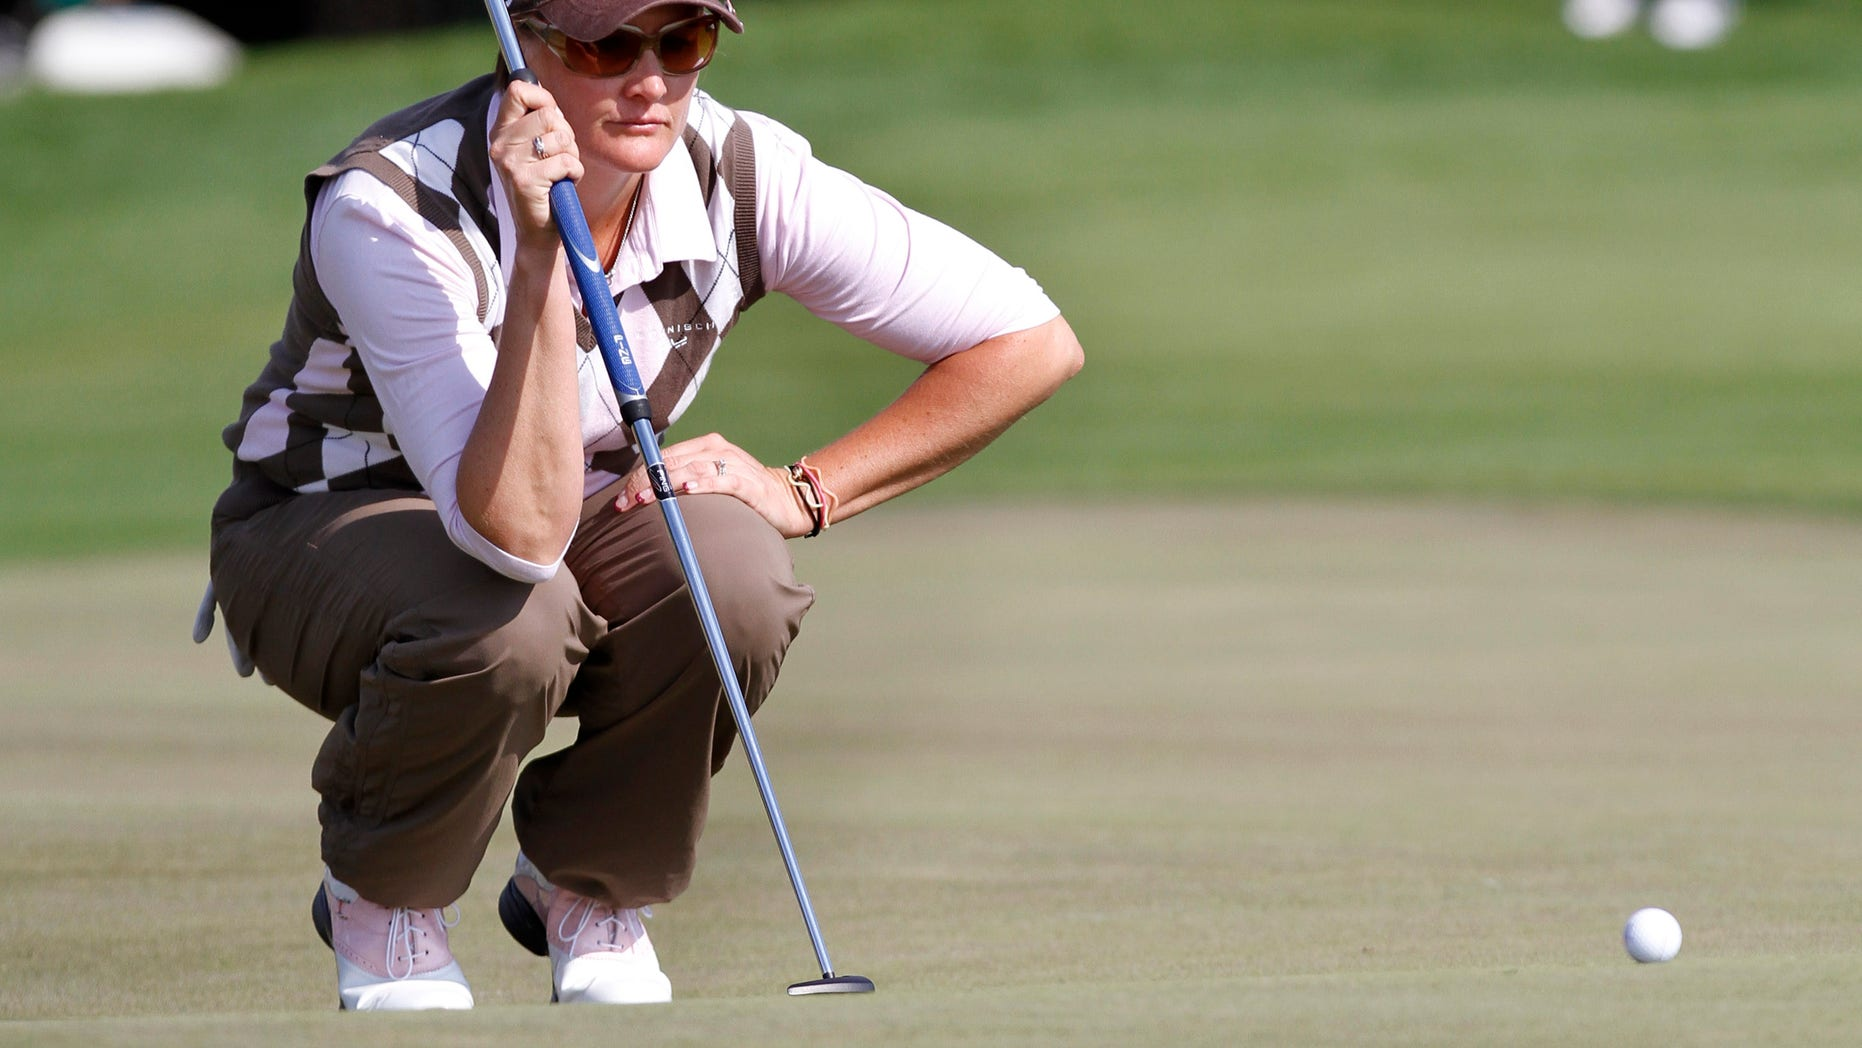 Maria Hjorth, of Sweden, lines up a putt on the fifth green during the final round of the LPGA Tour Championship golf tournament in Orlando, Fla., Sunday, Dec. 5, 2010. (AP Photo/Reinhold Matay)